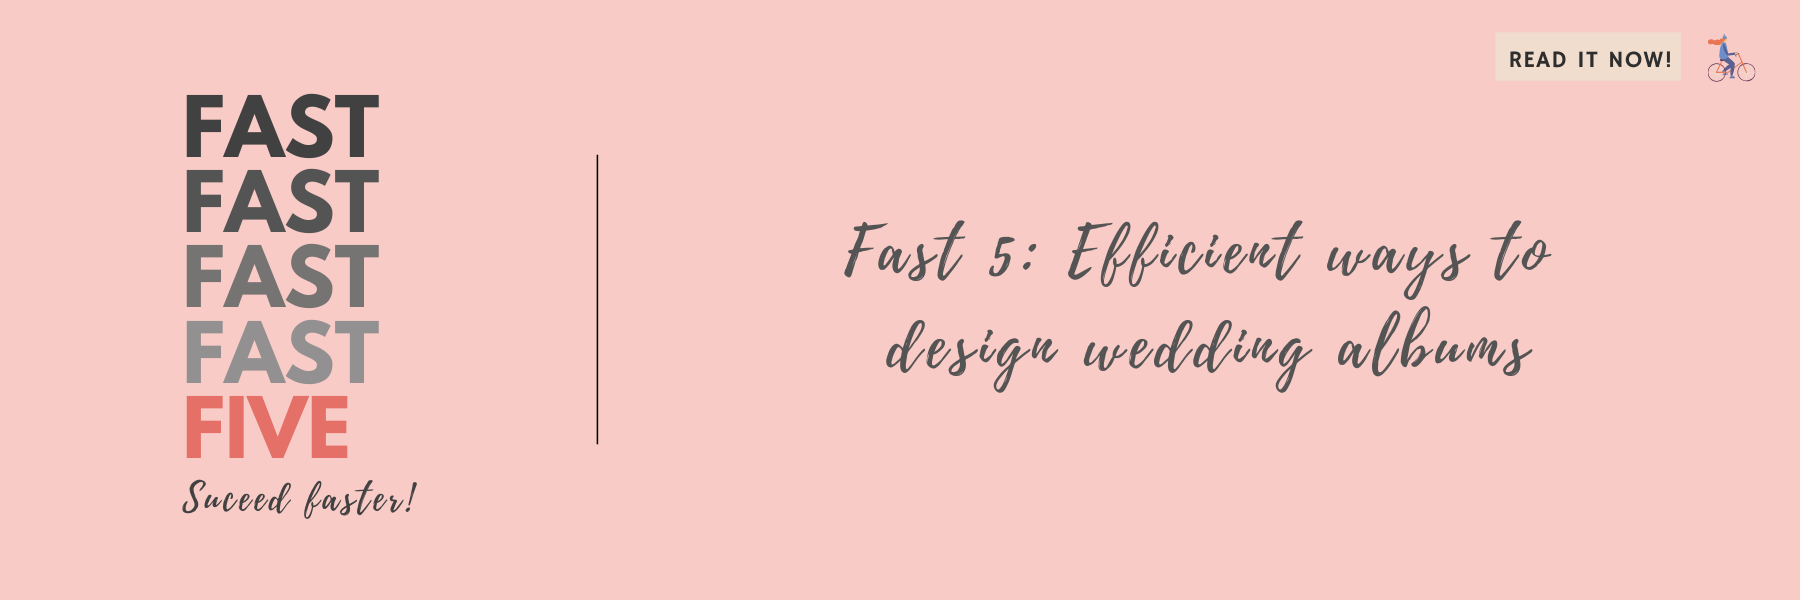 DESIGN WEDDING ALBUMS